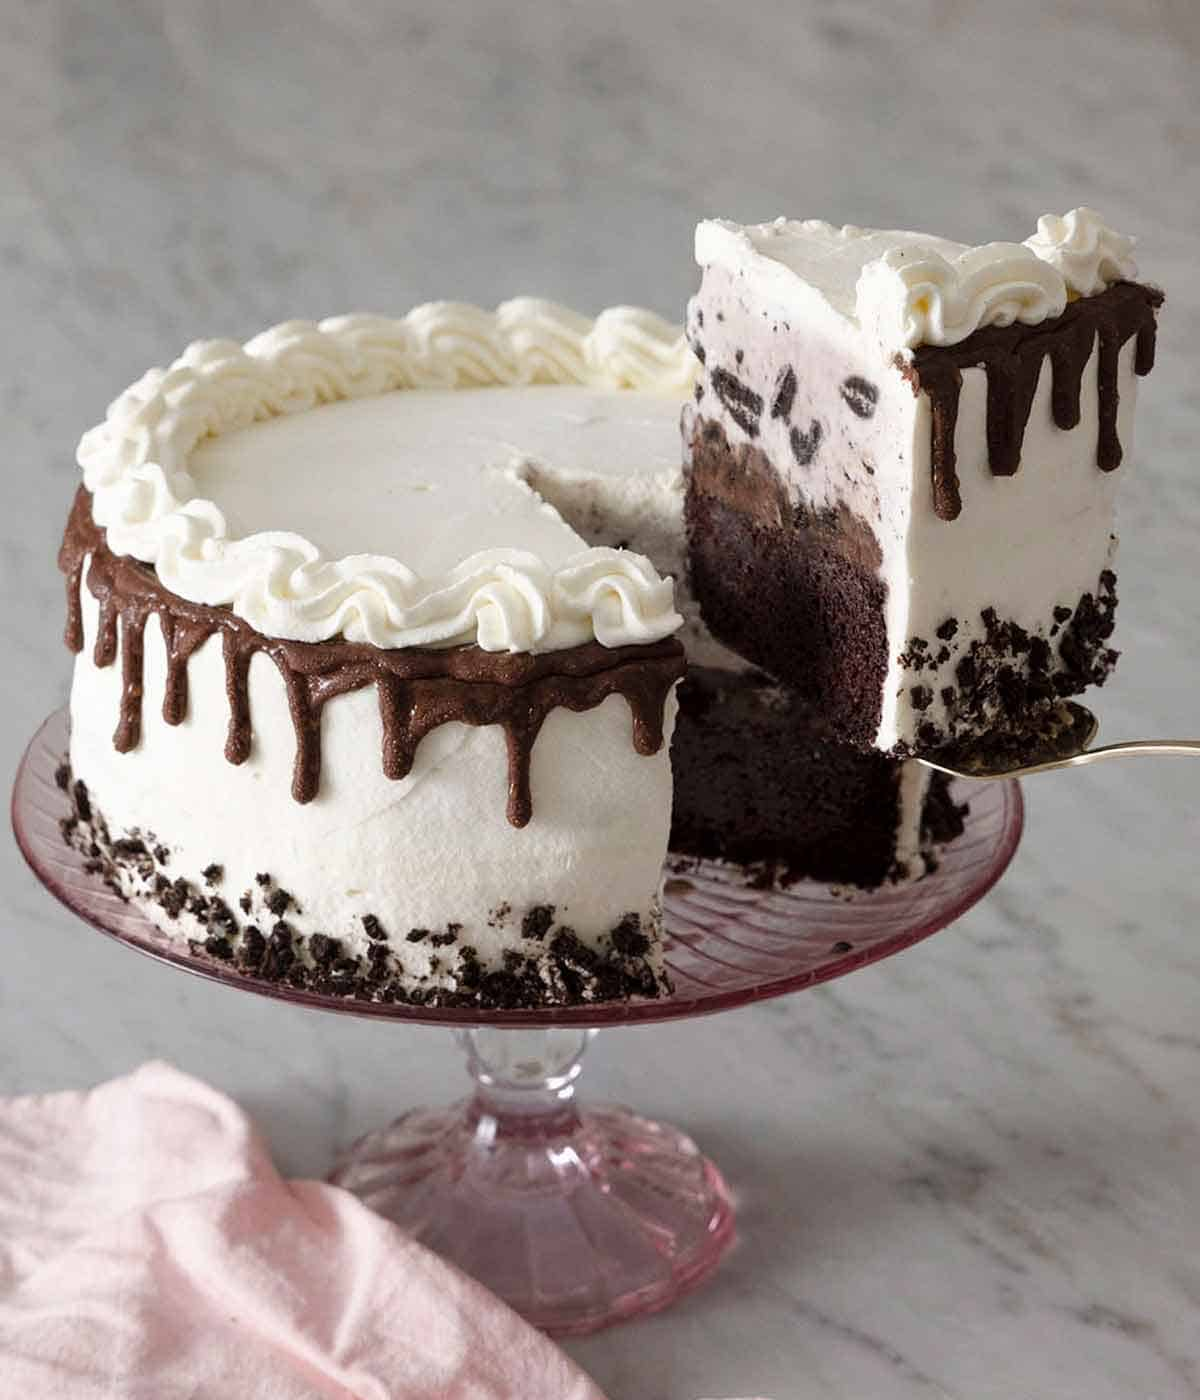 An ice cream cake on a cake stand with a slice being lifted up with a cake serving spatula.